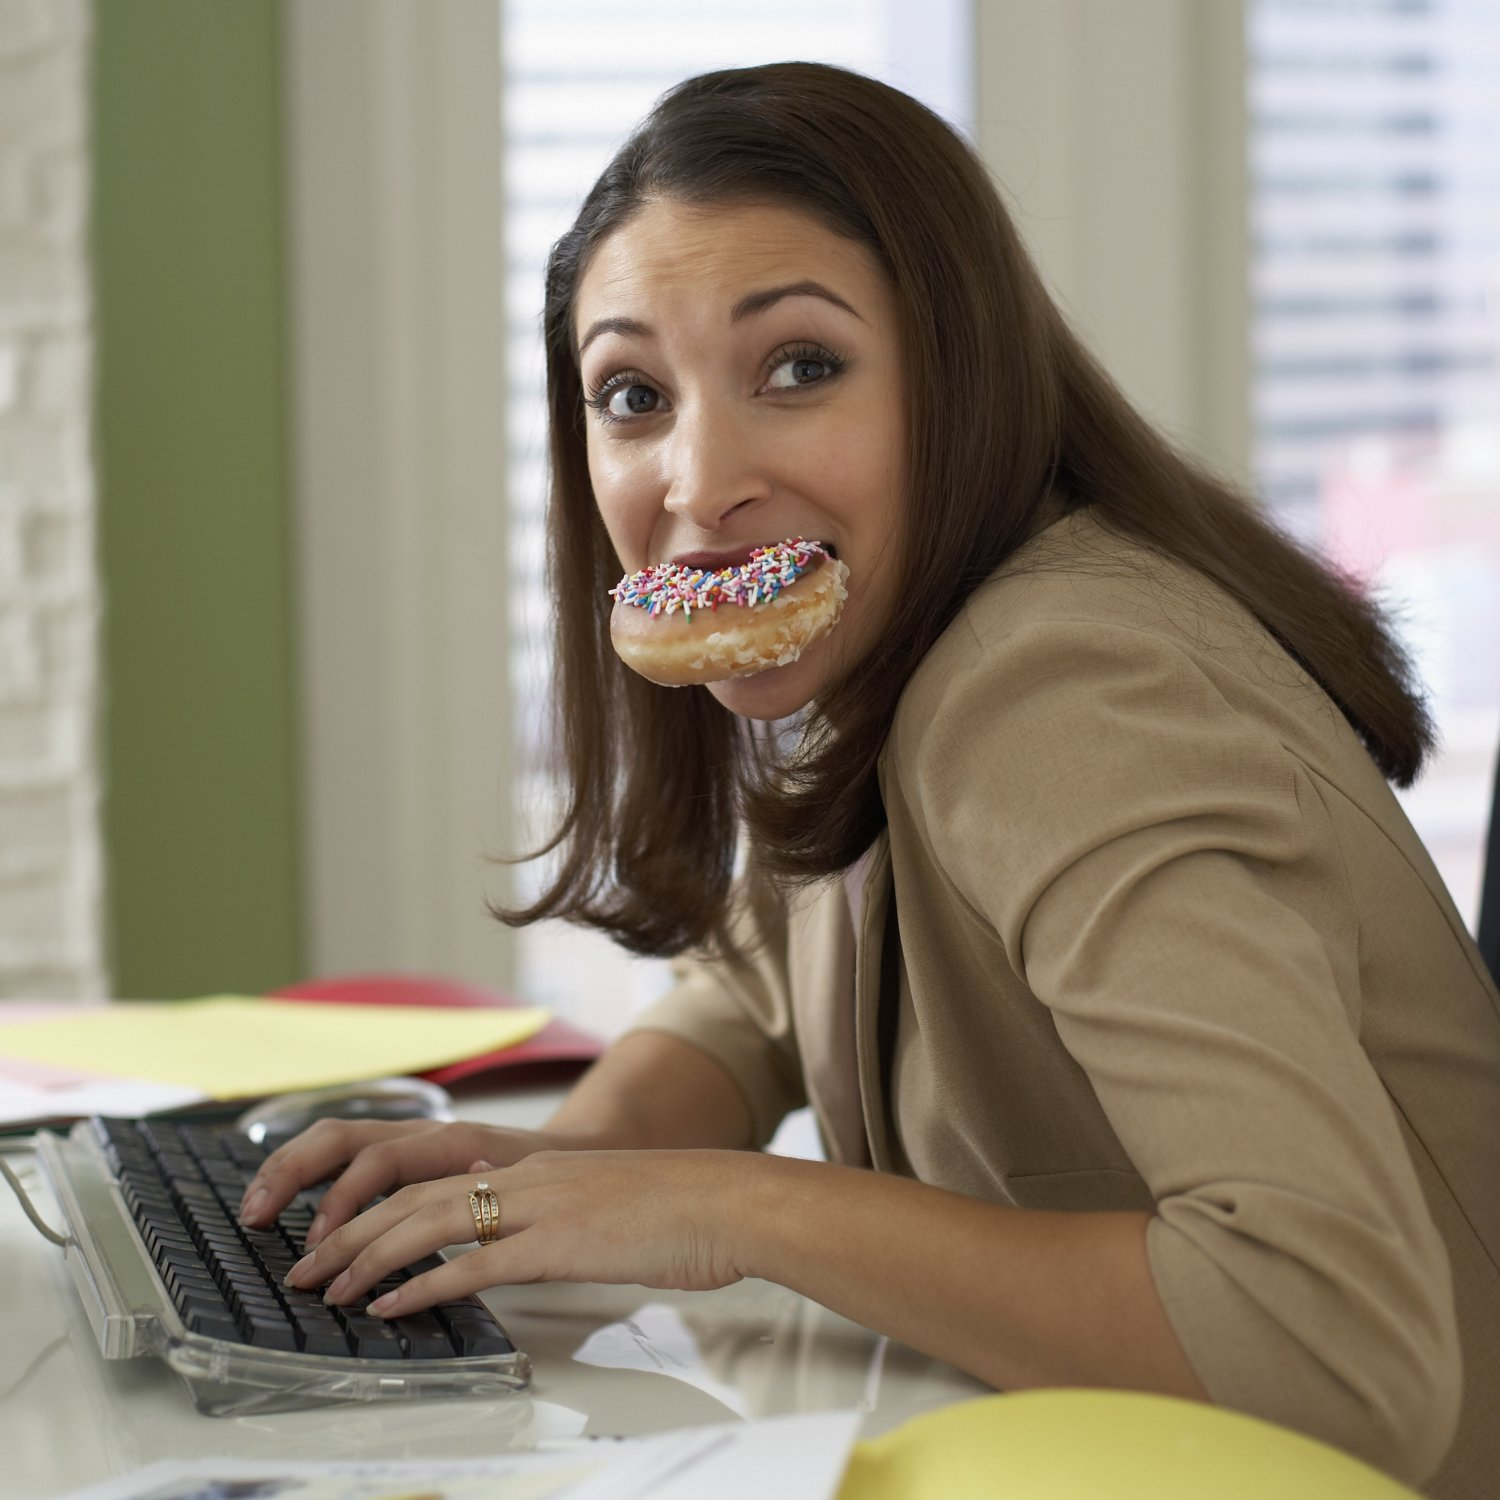 woman-eating-chocolate-donut-desk_0